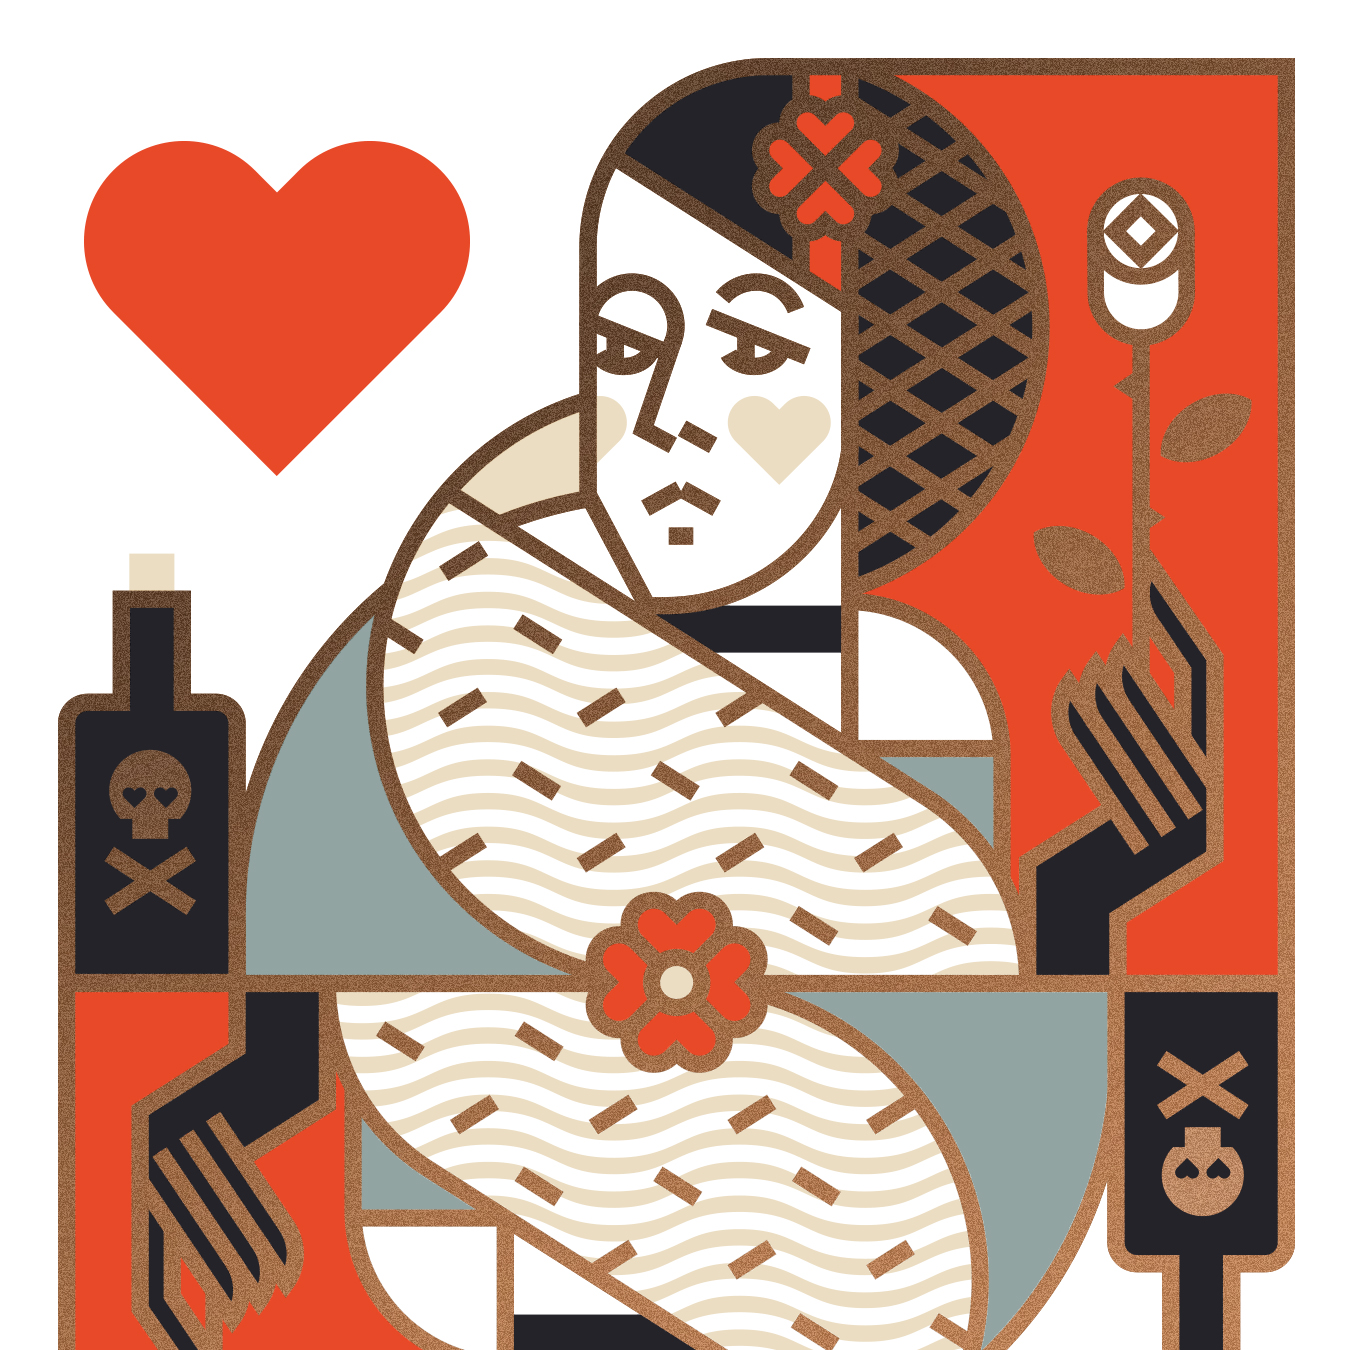 Union Playing Card Queen of Hearts Illustration